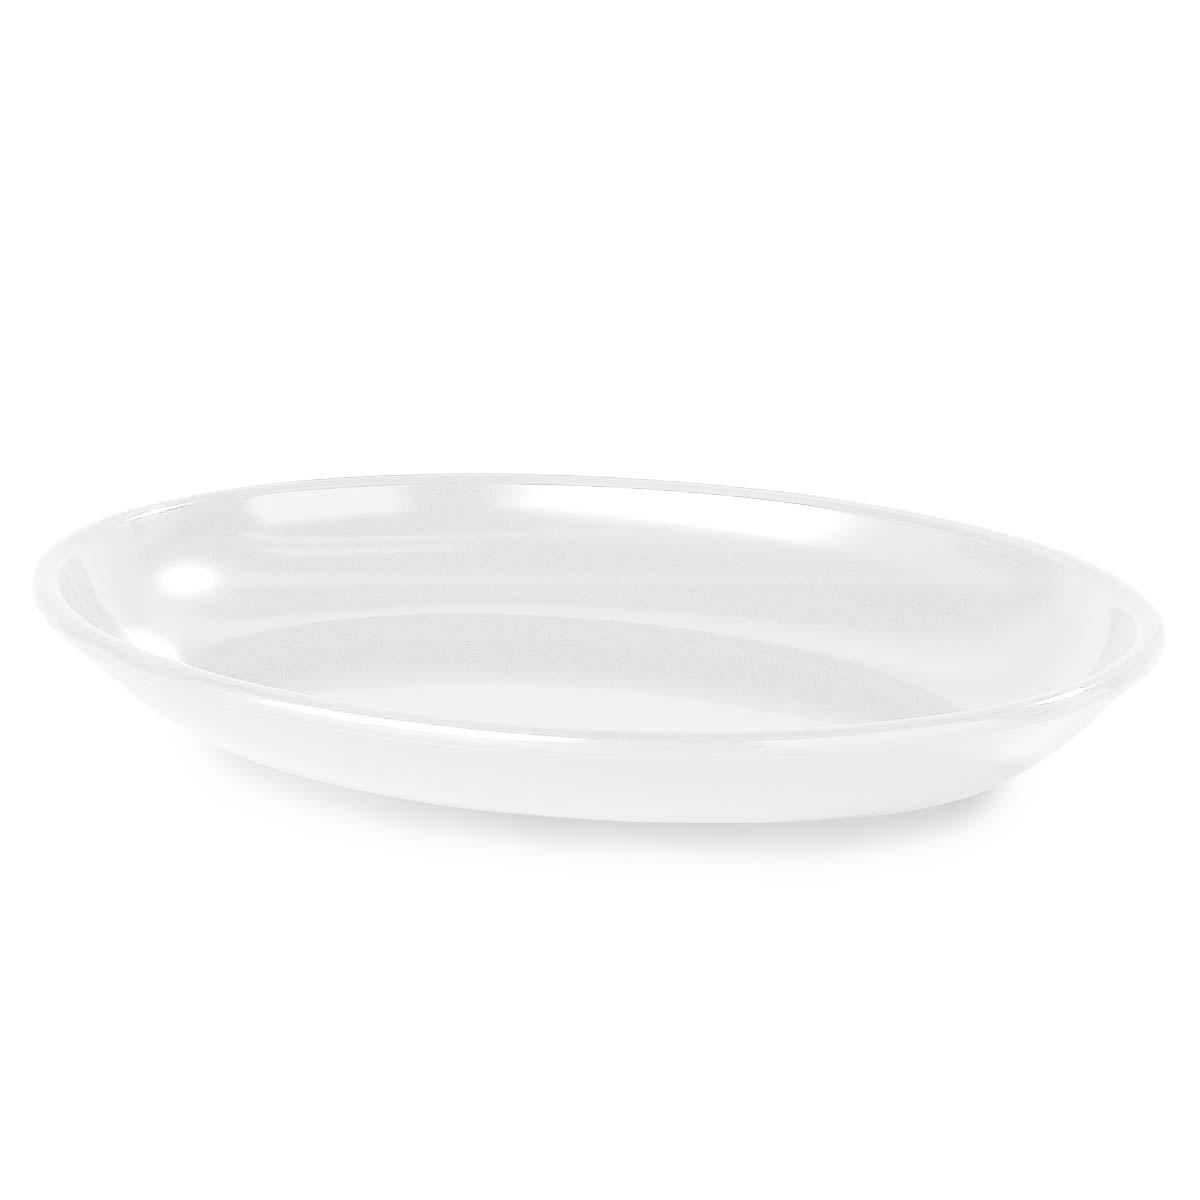 OVAL PLATTER - 406 X 305mm 2.8Lt (BLACK)